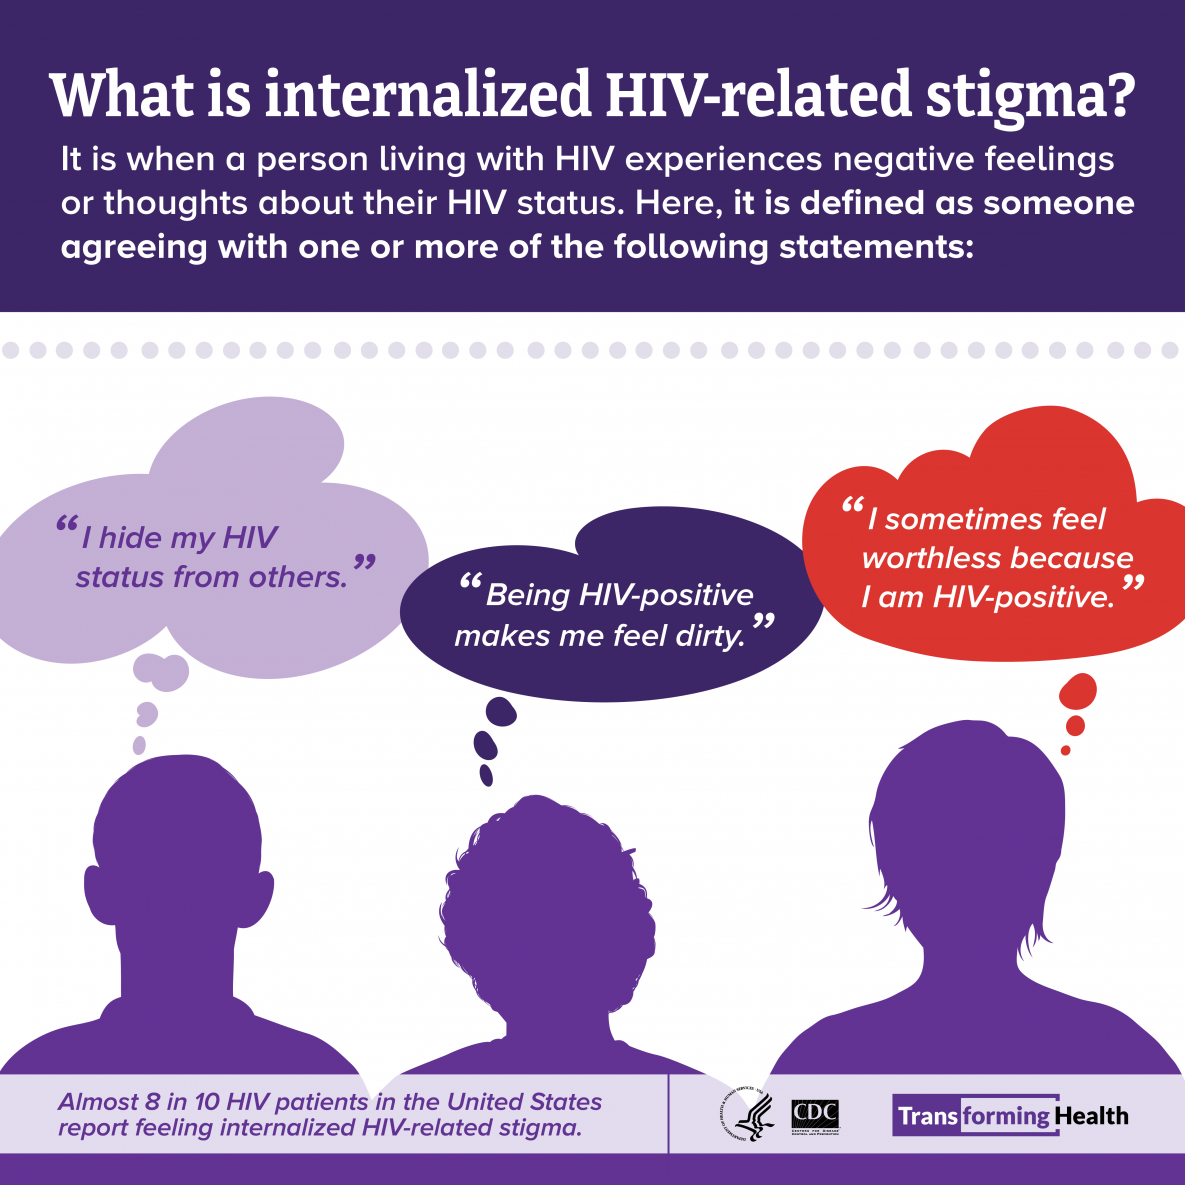 What is internalized HIV-related stigma?